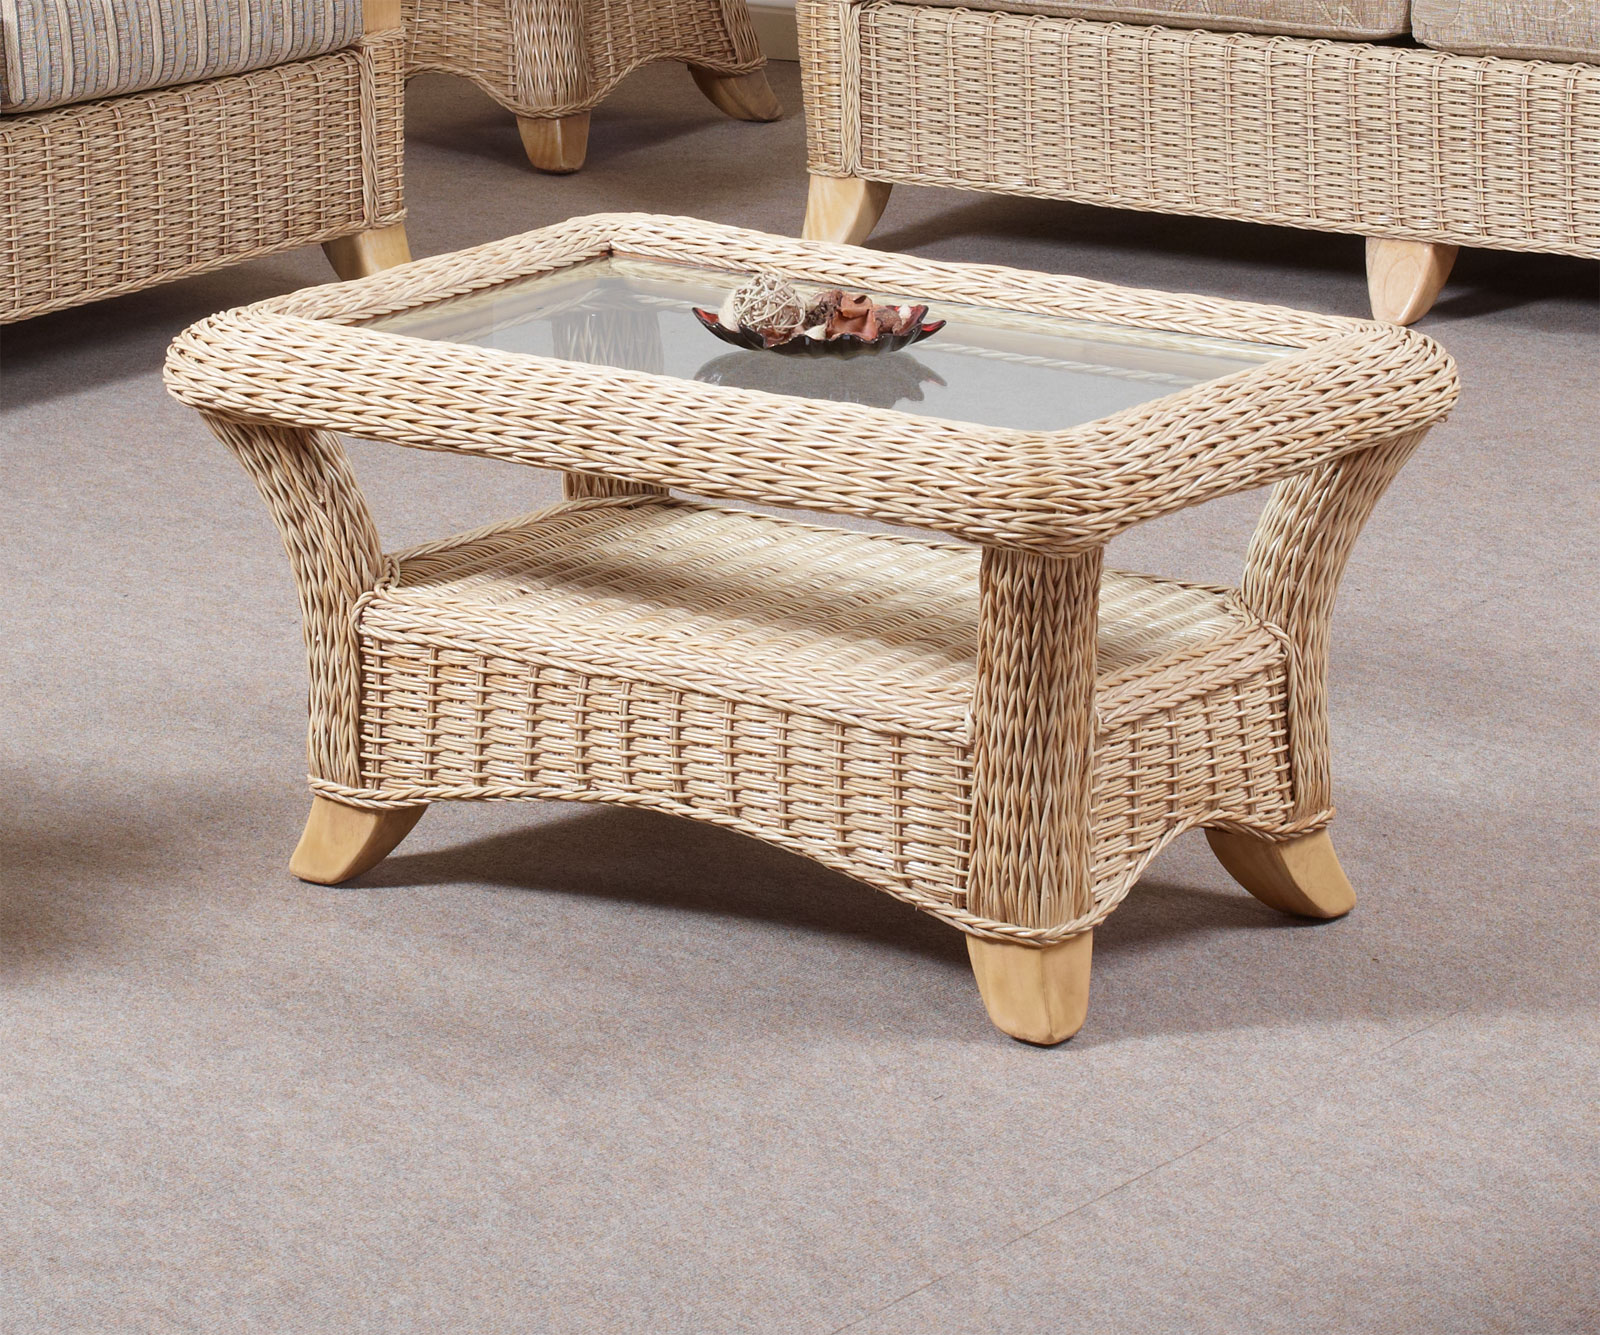 Cane And Rattan Conservatory Furniture Hilton Conservatory Cane Furniture Wicker Coffee Table 91cm X 61cm X